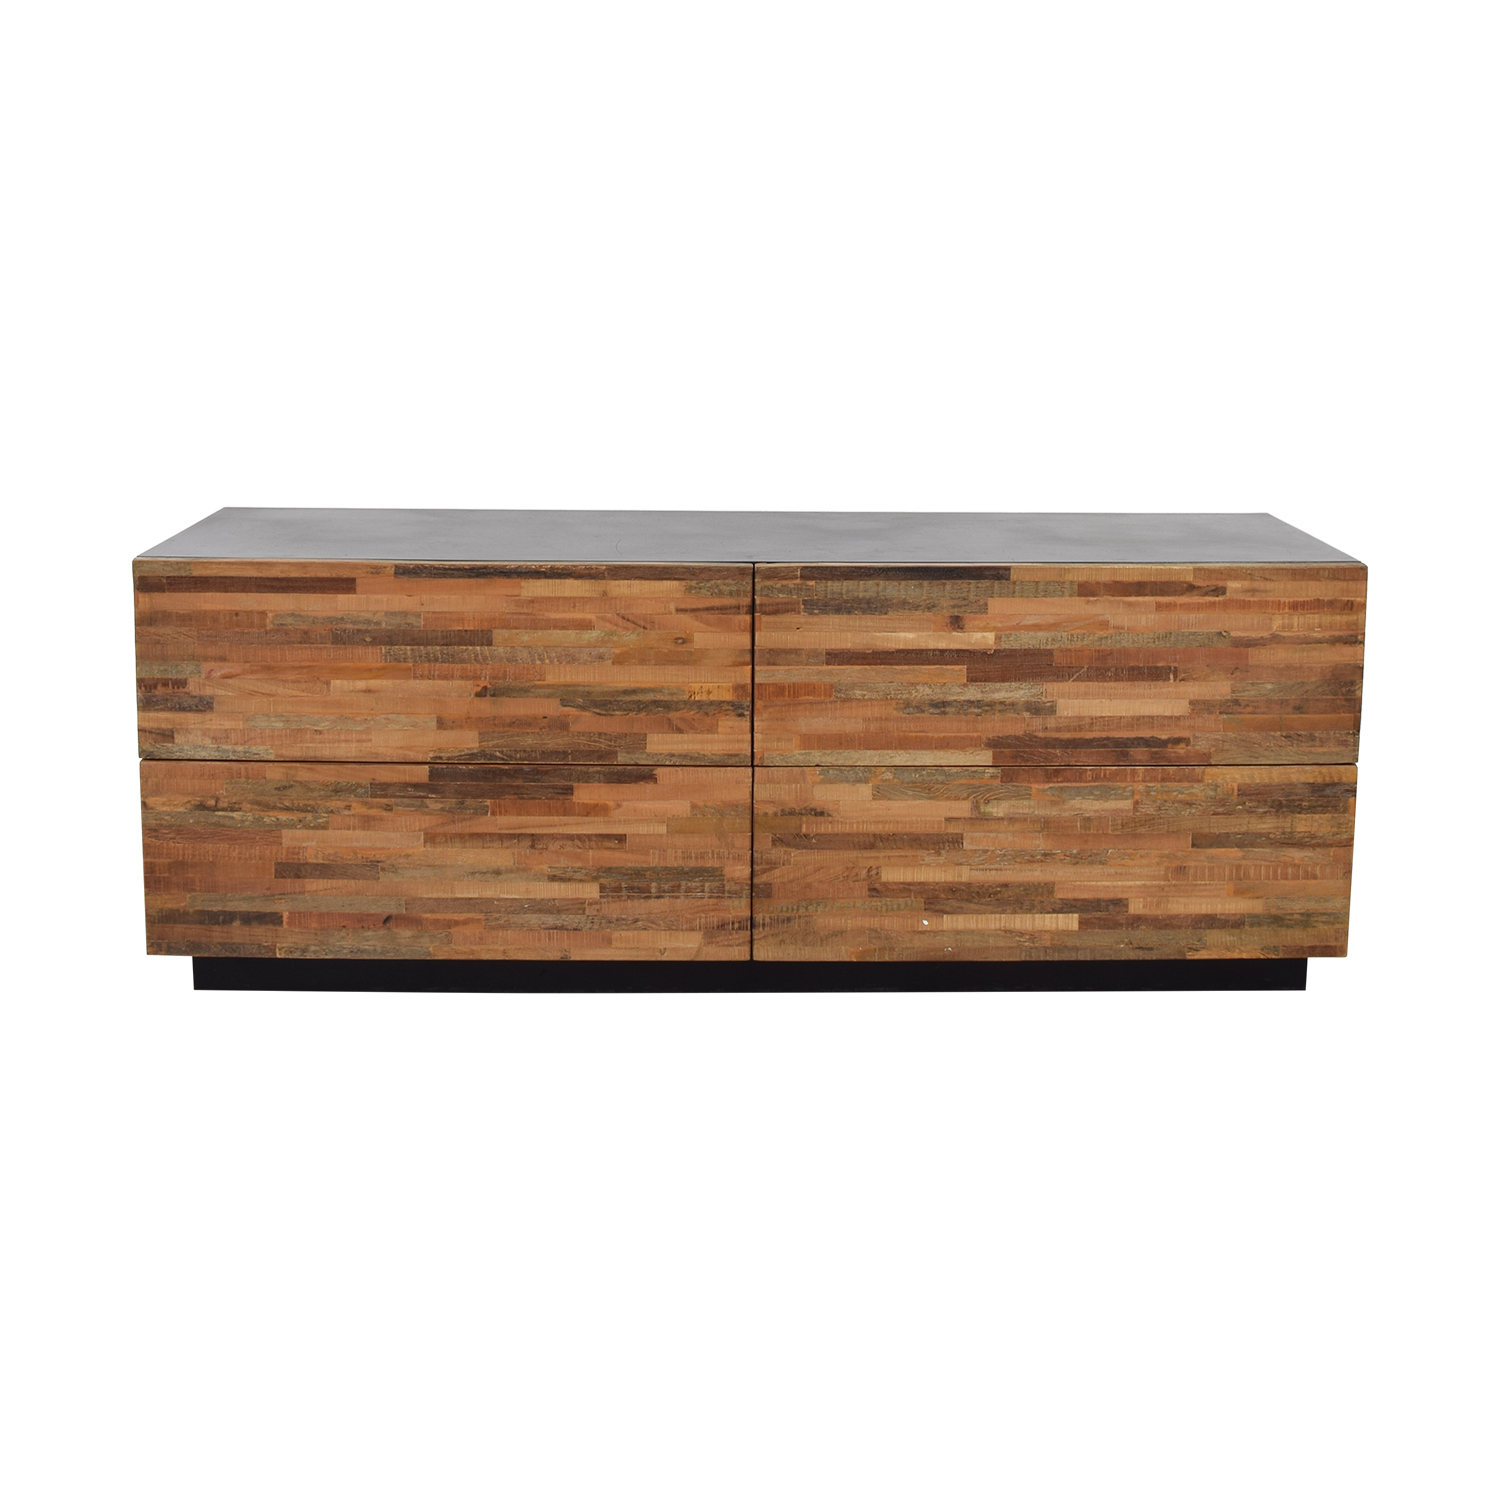 Restoration Hardware Restoration Hardware Rustic Wood Four-Drawer Low Dresser Storage